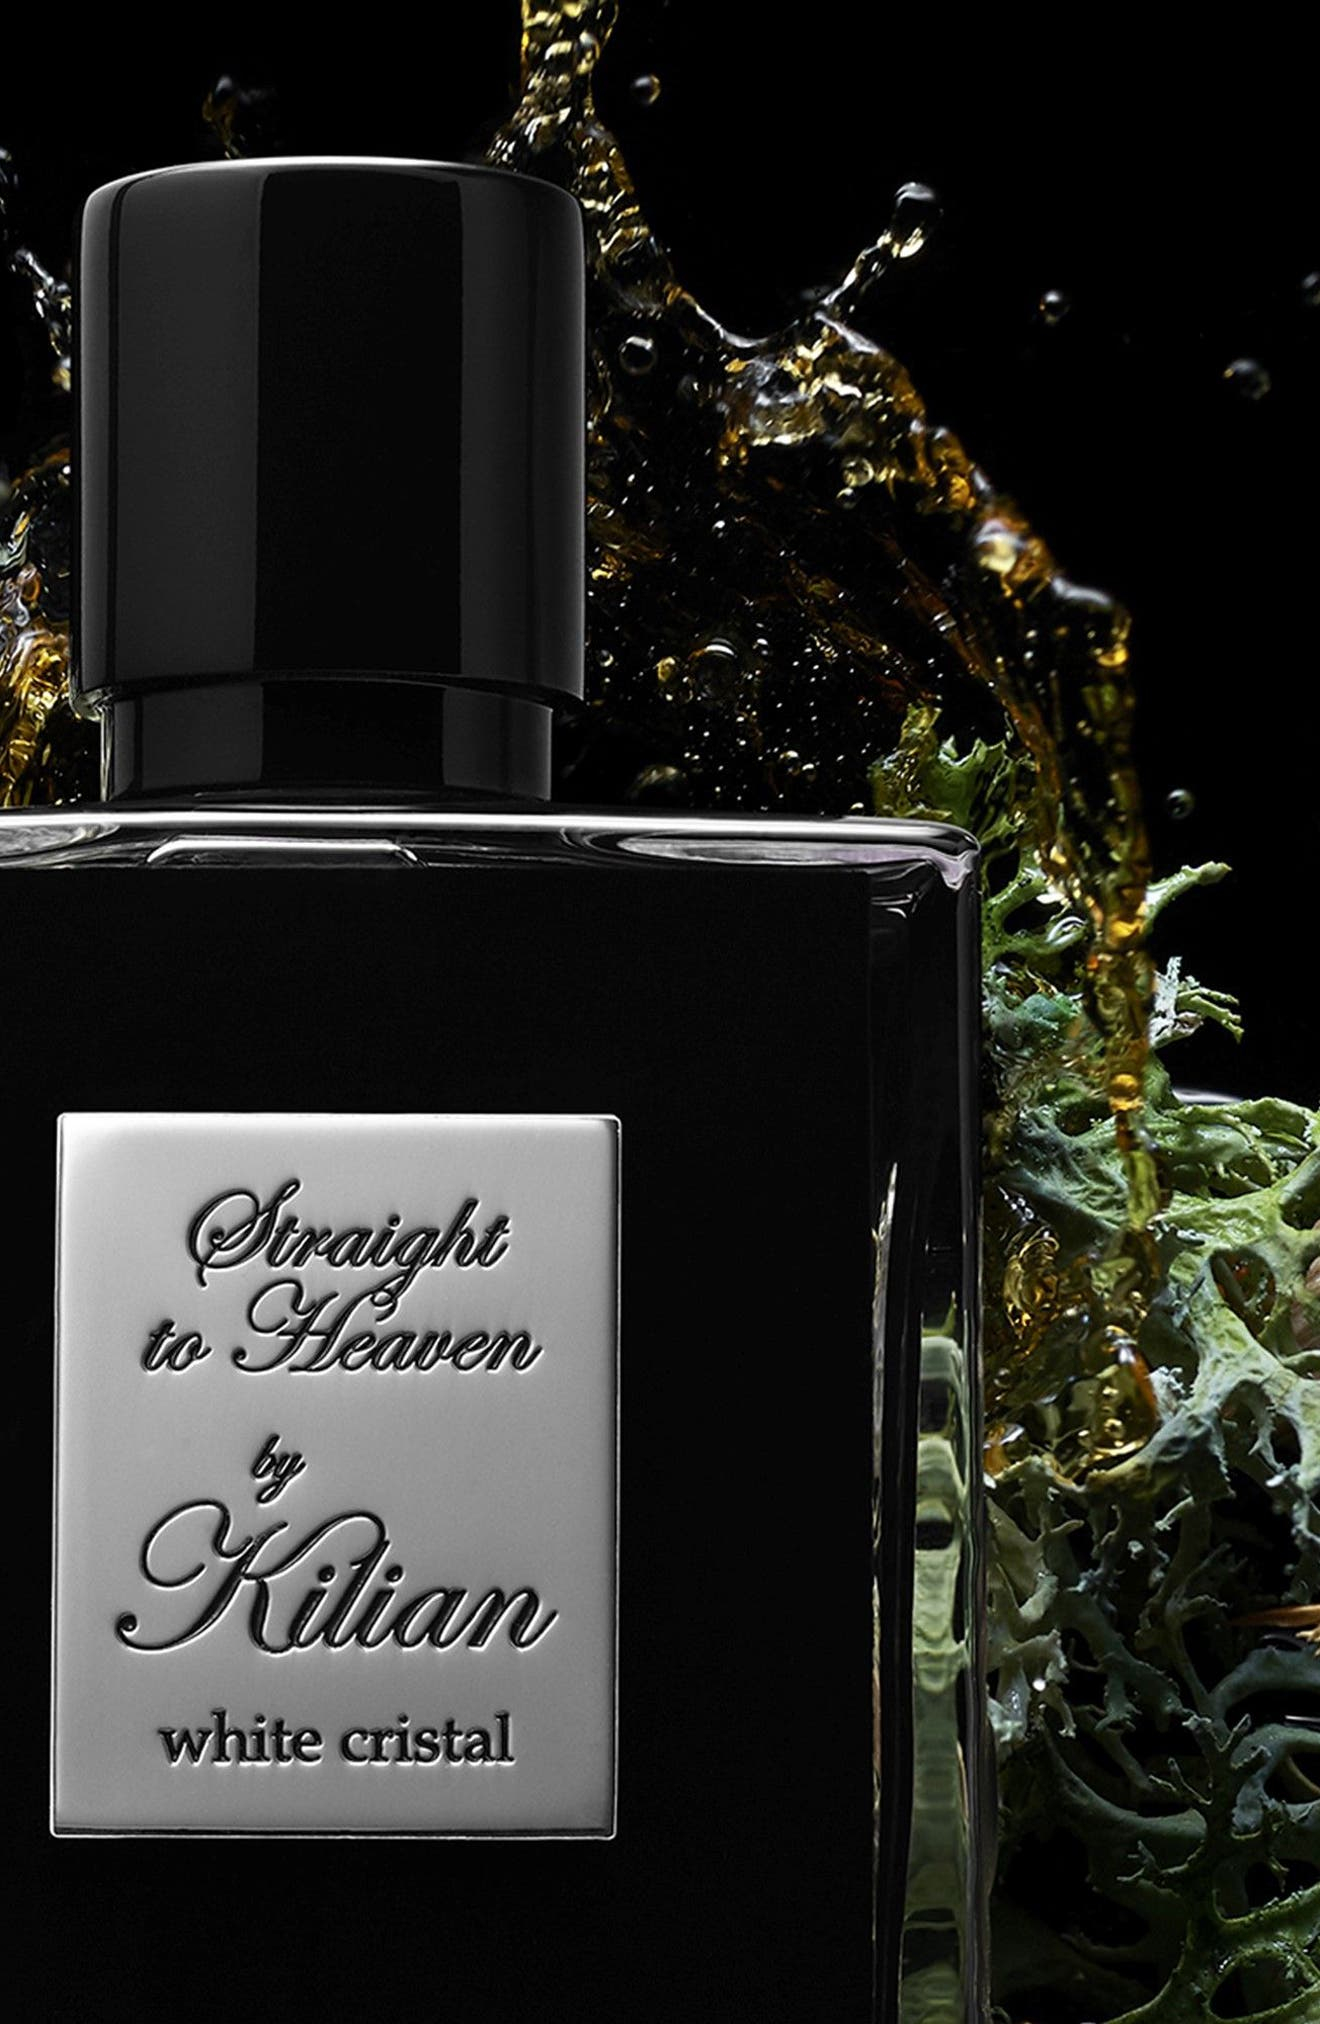 'L'Oeuvre Noire - Straight to Heaven, white cristal' Refillable Fragrance Spray,                             Alternate thumbnail 2, color,                             No Color